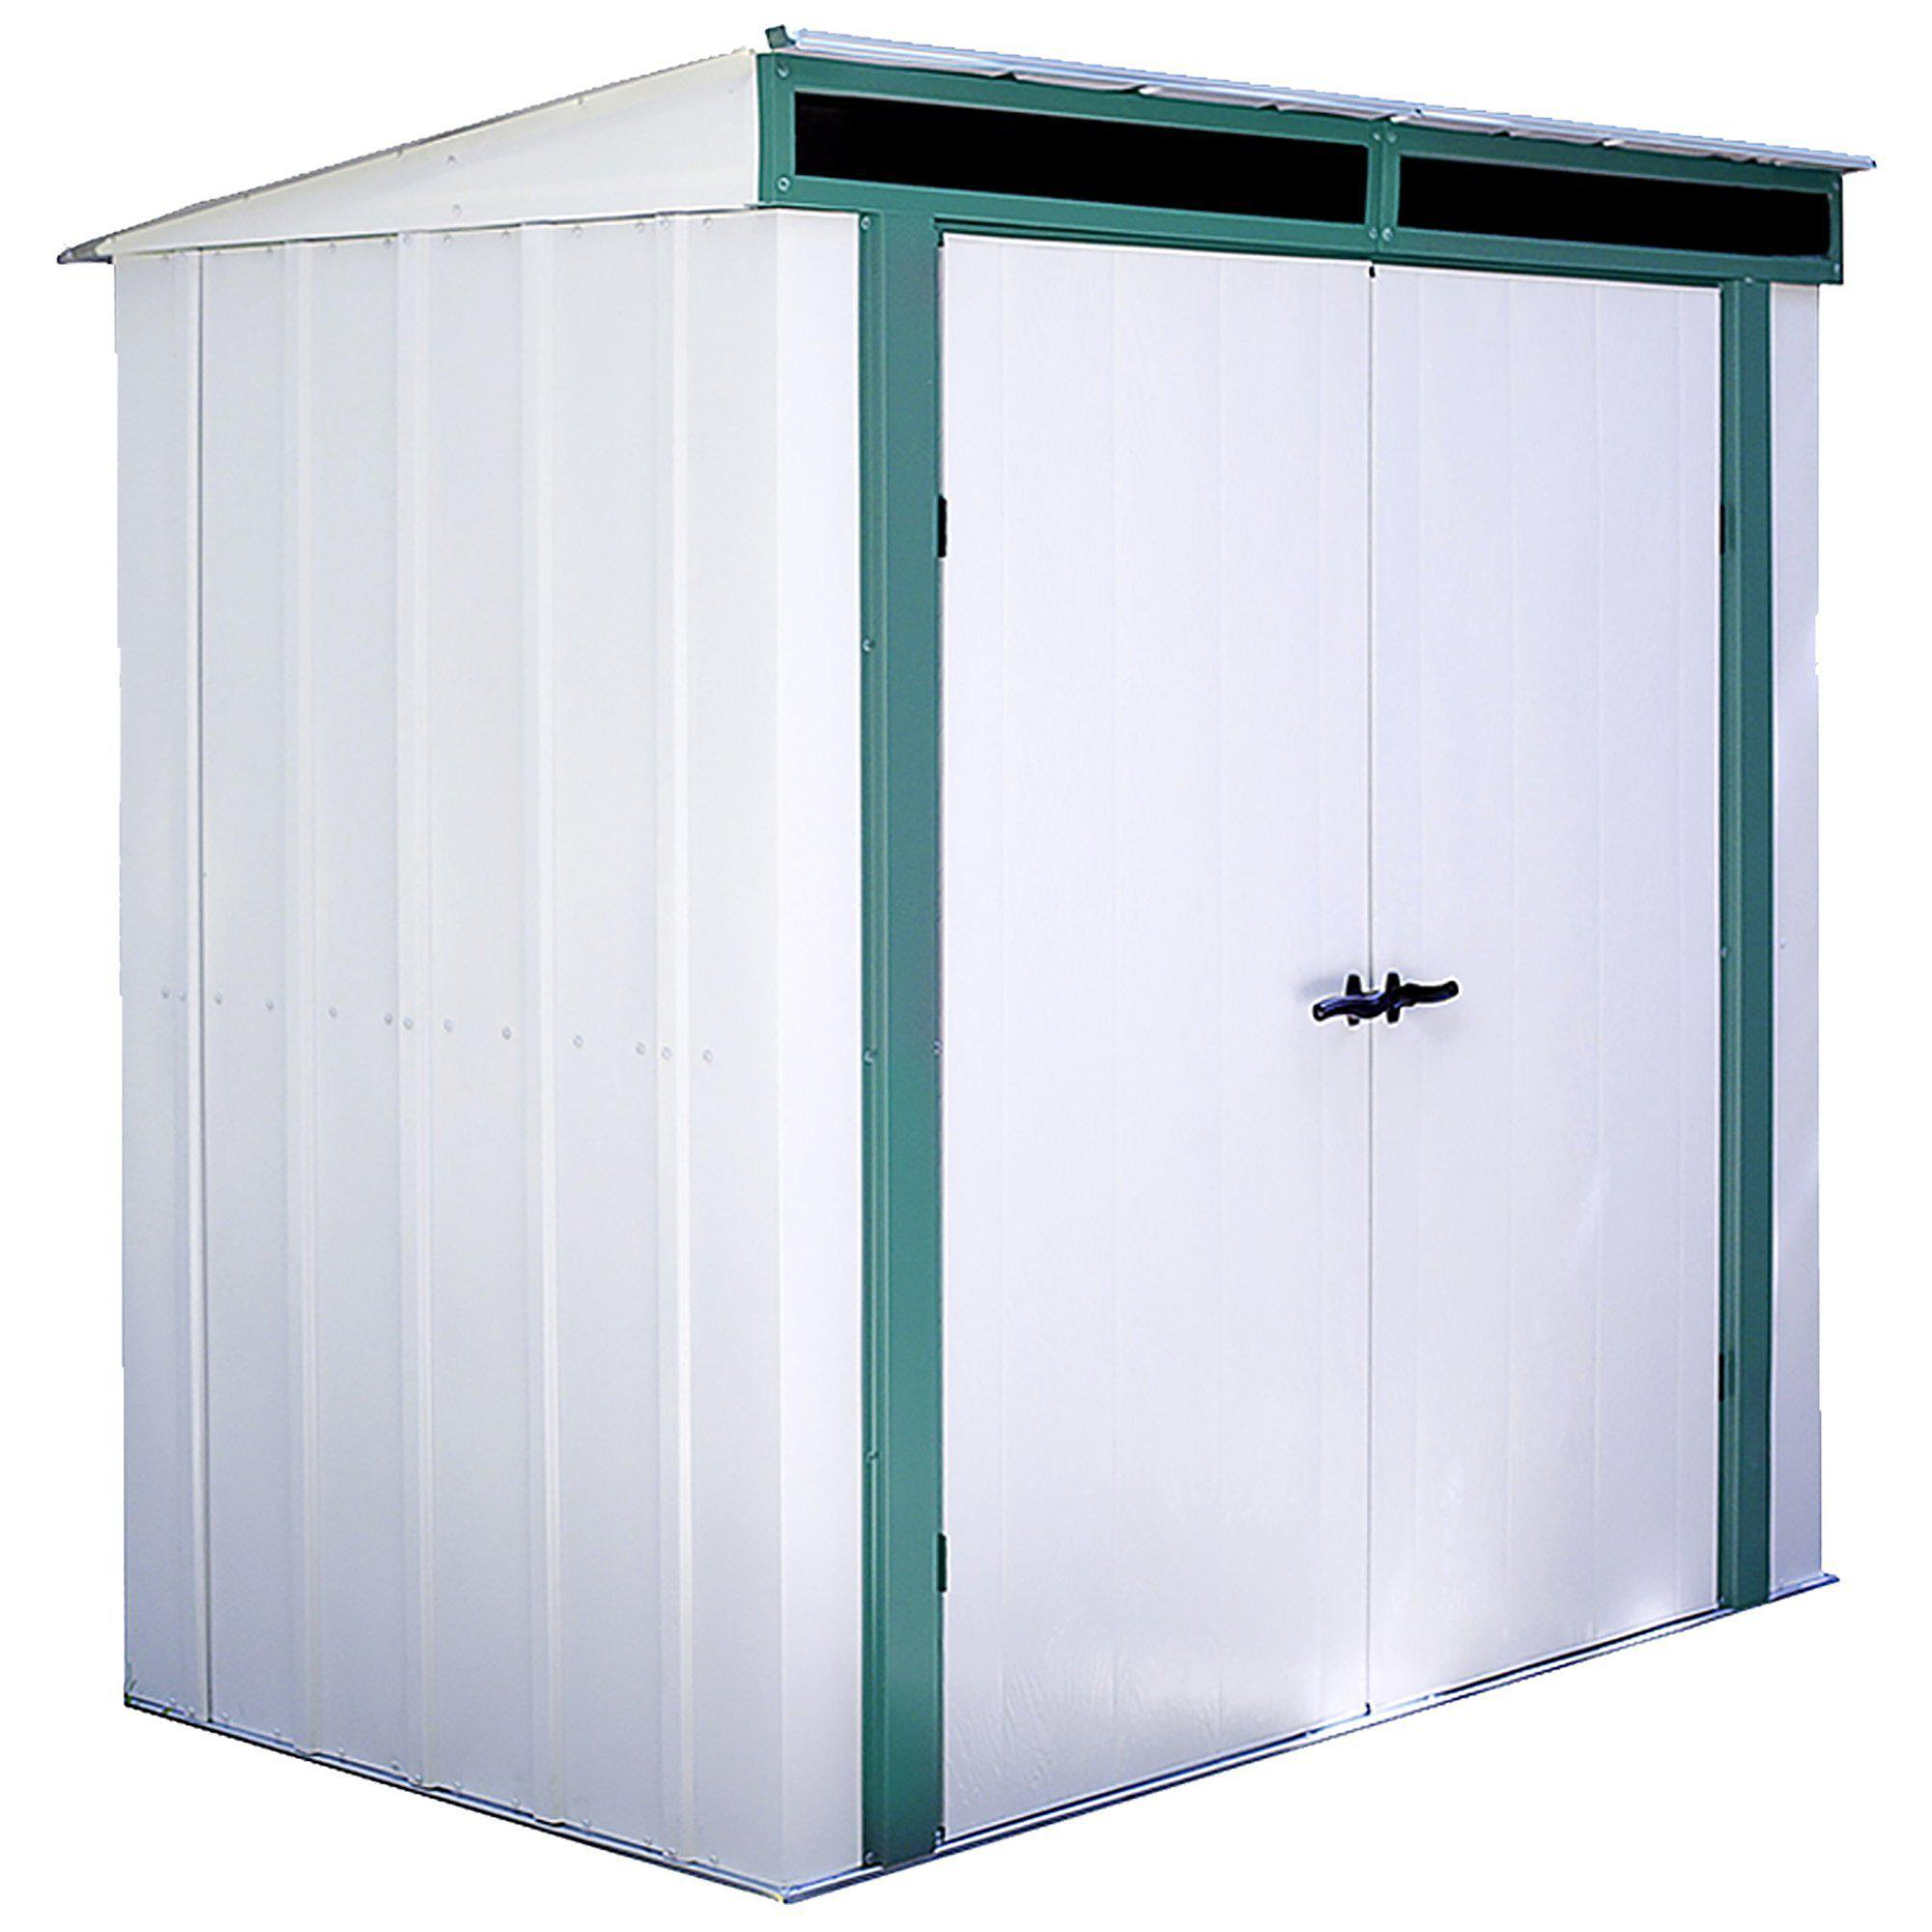 Arrow Euro-Lite Steel Storage Pent Shed, Green/Eggshell, 6 x 4 ft.